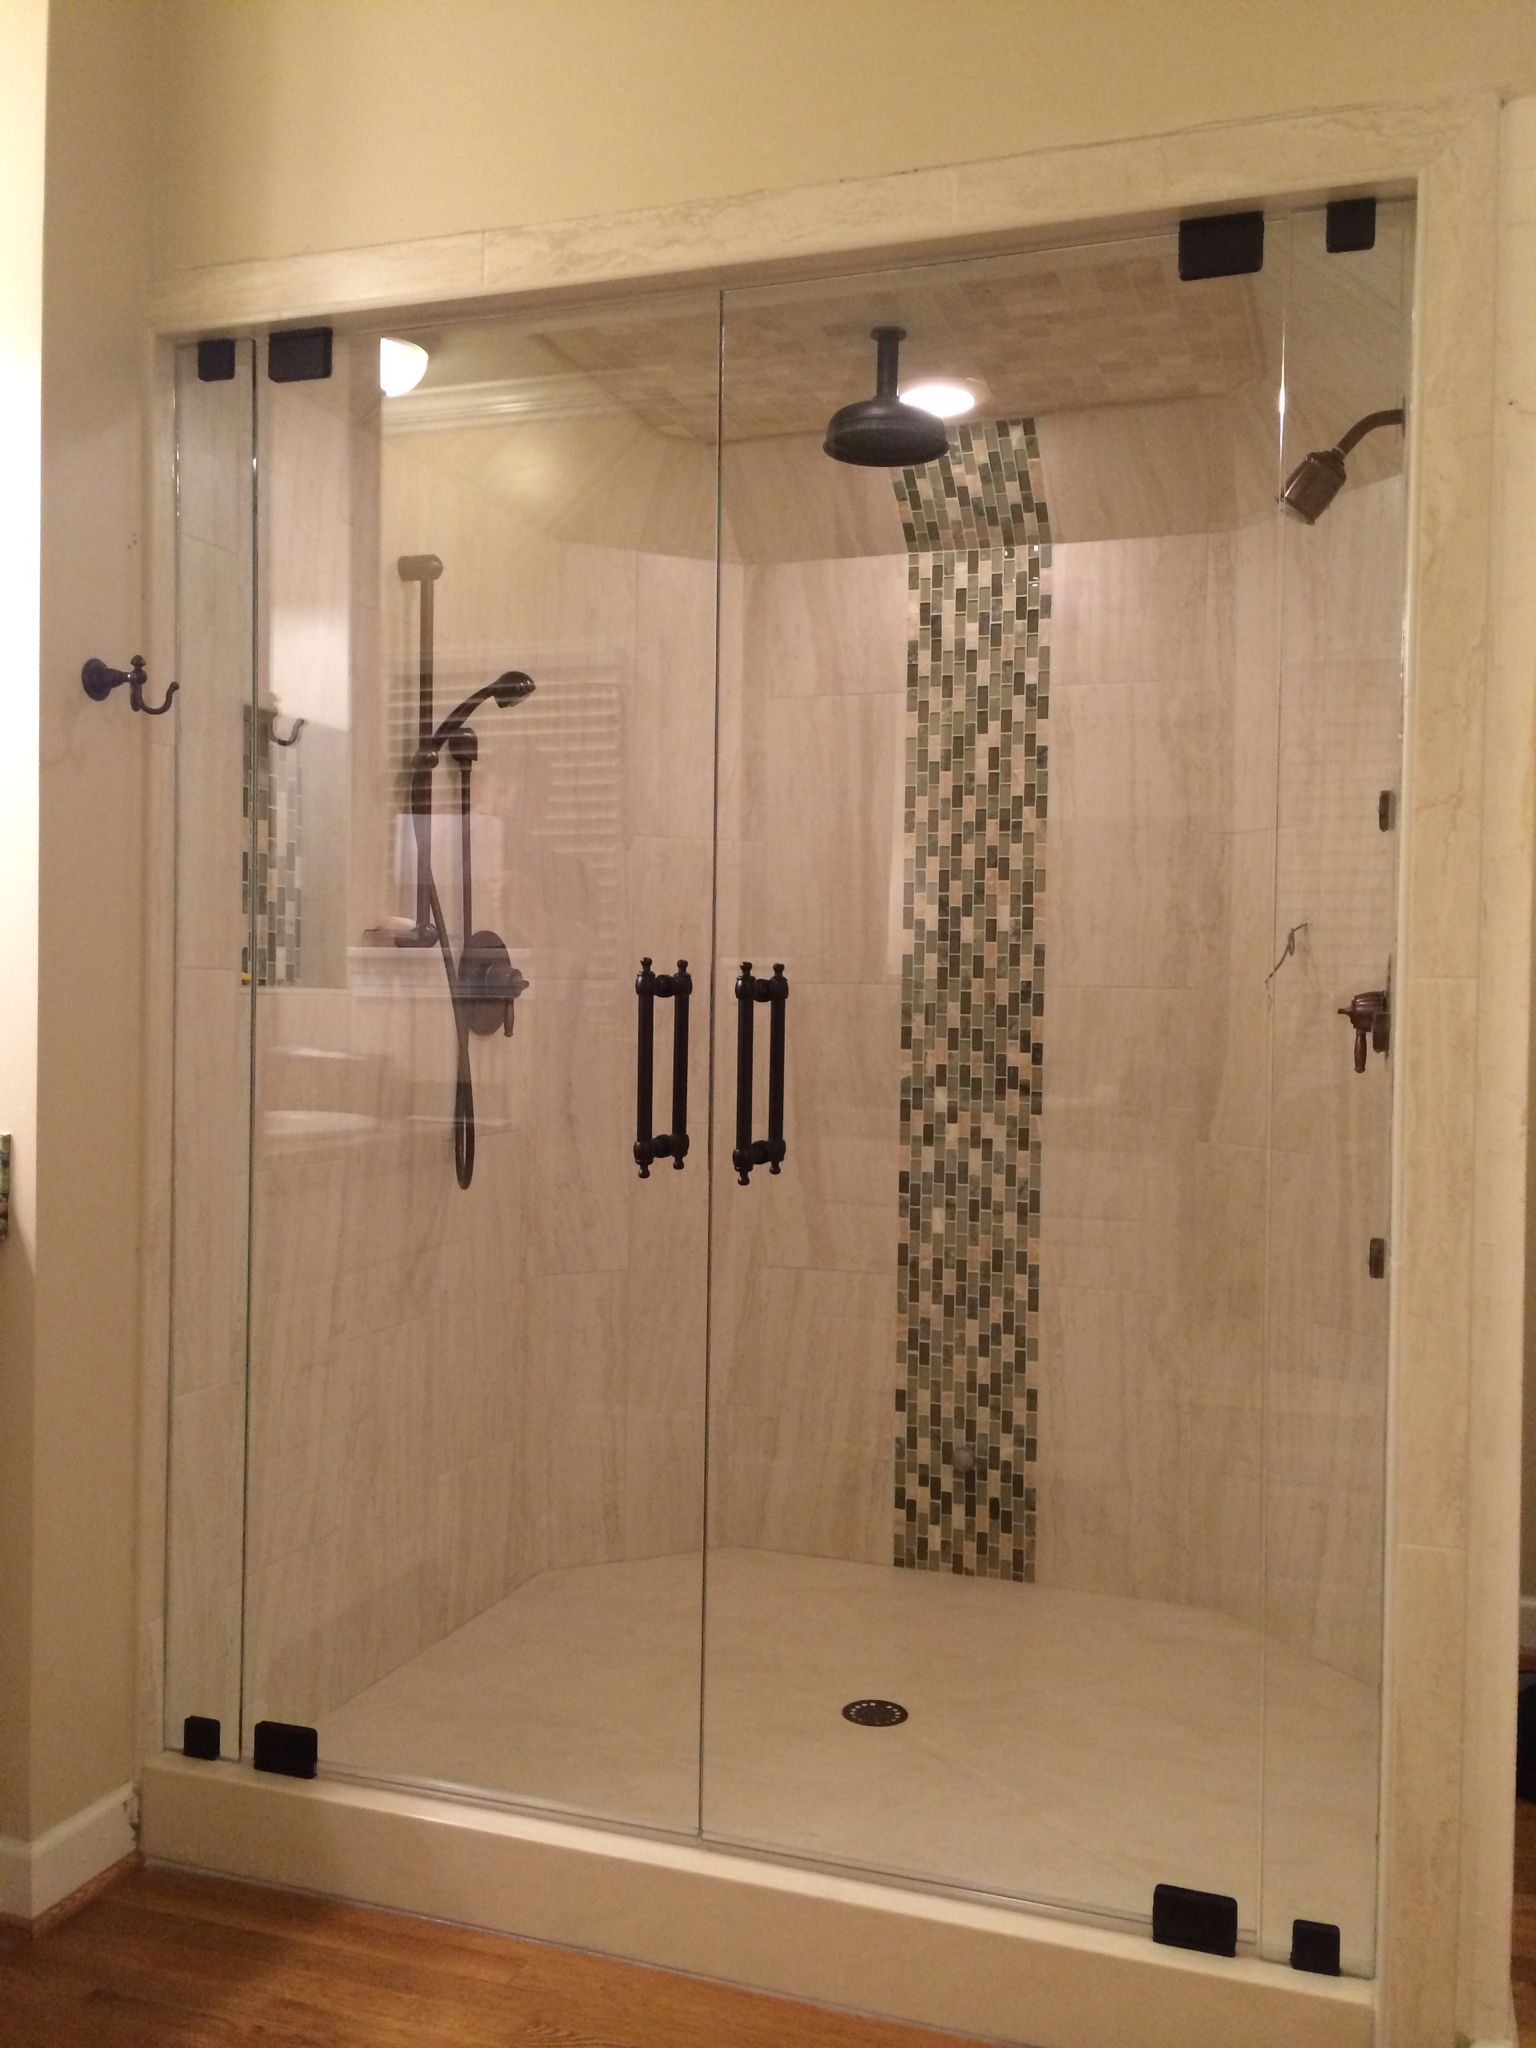 Double Door Steam Shower With Colonial Handles In Orb Hardware